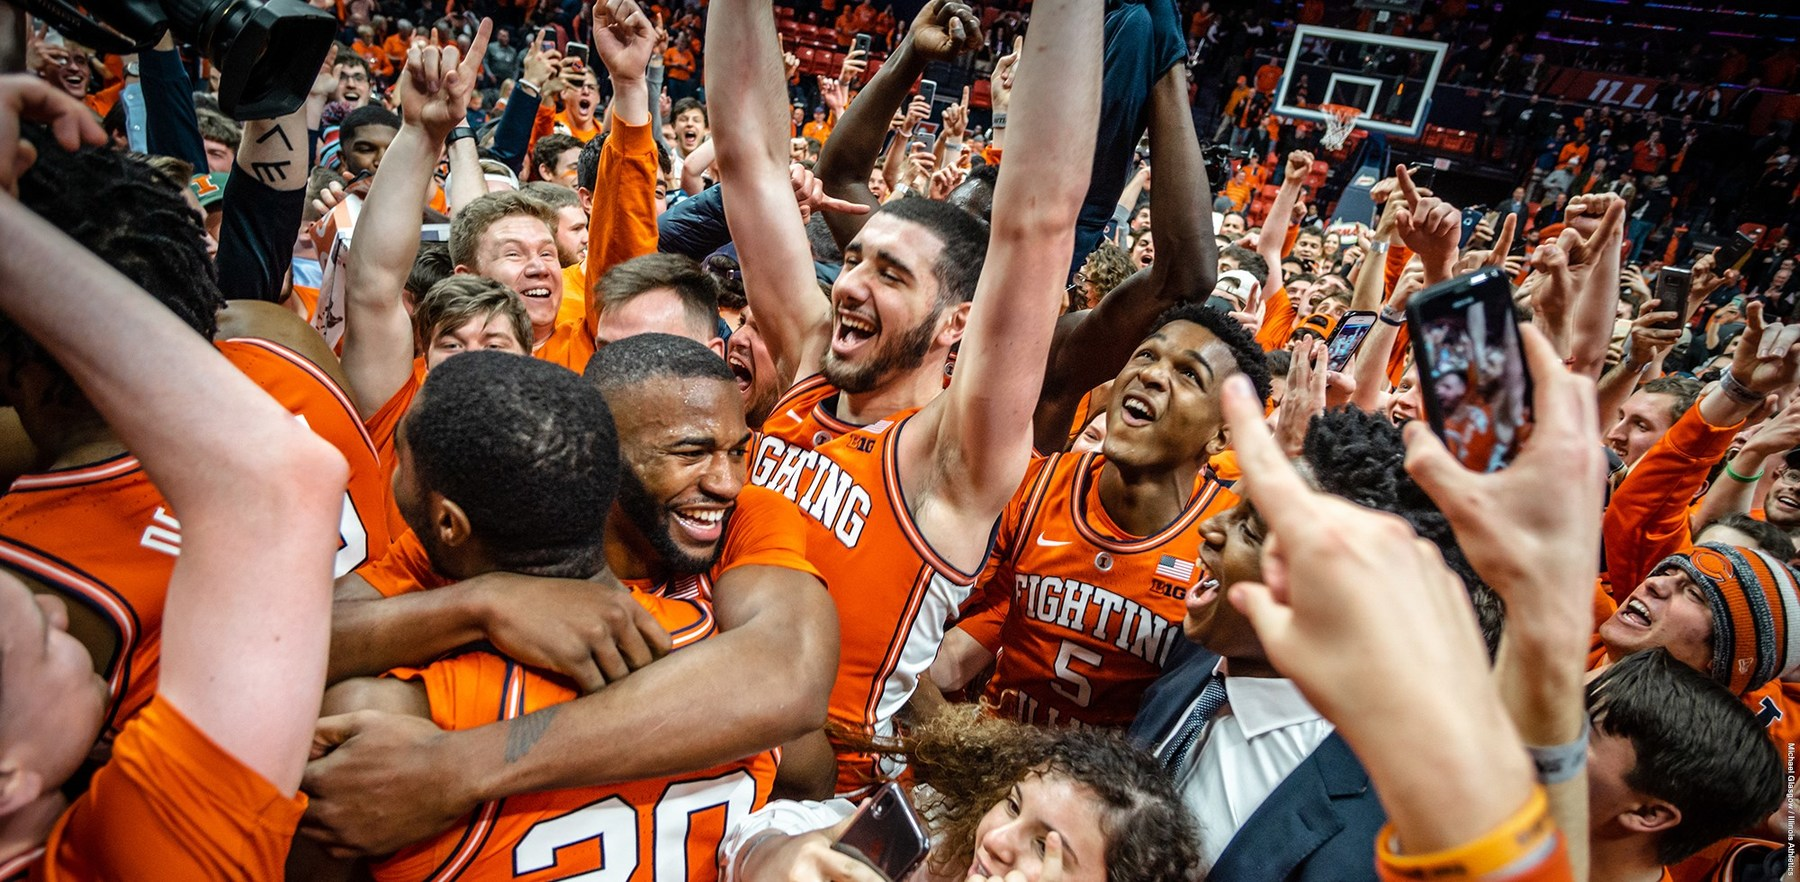 Illini basketball players celebrate, surrounded by fans, who stormed the court followiong the victory over the Spartans